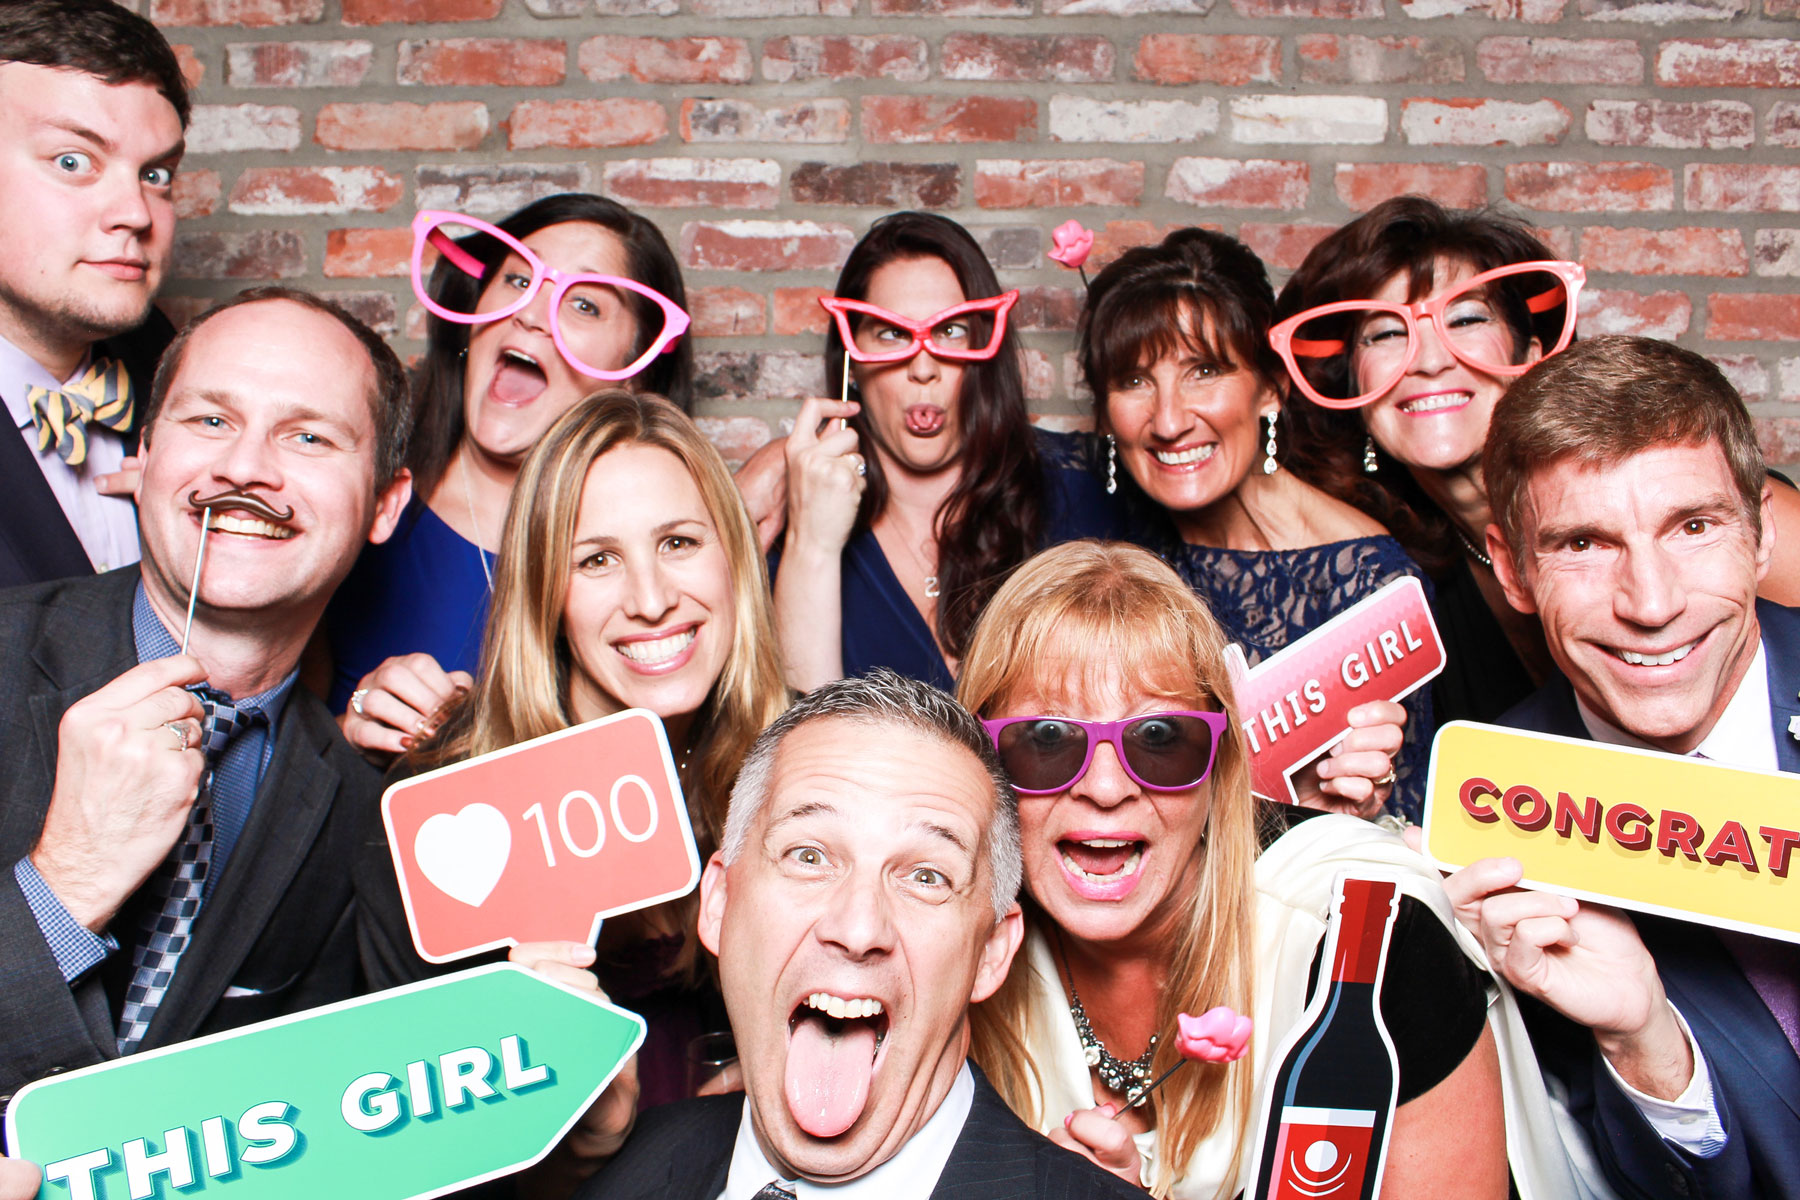 Wedding photo booth experience